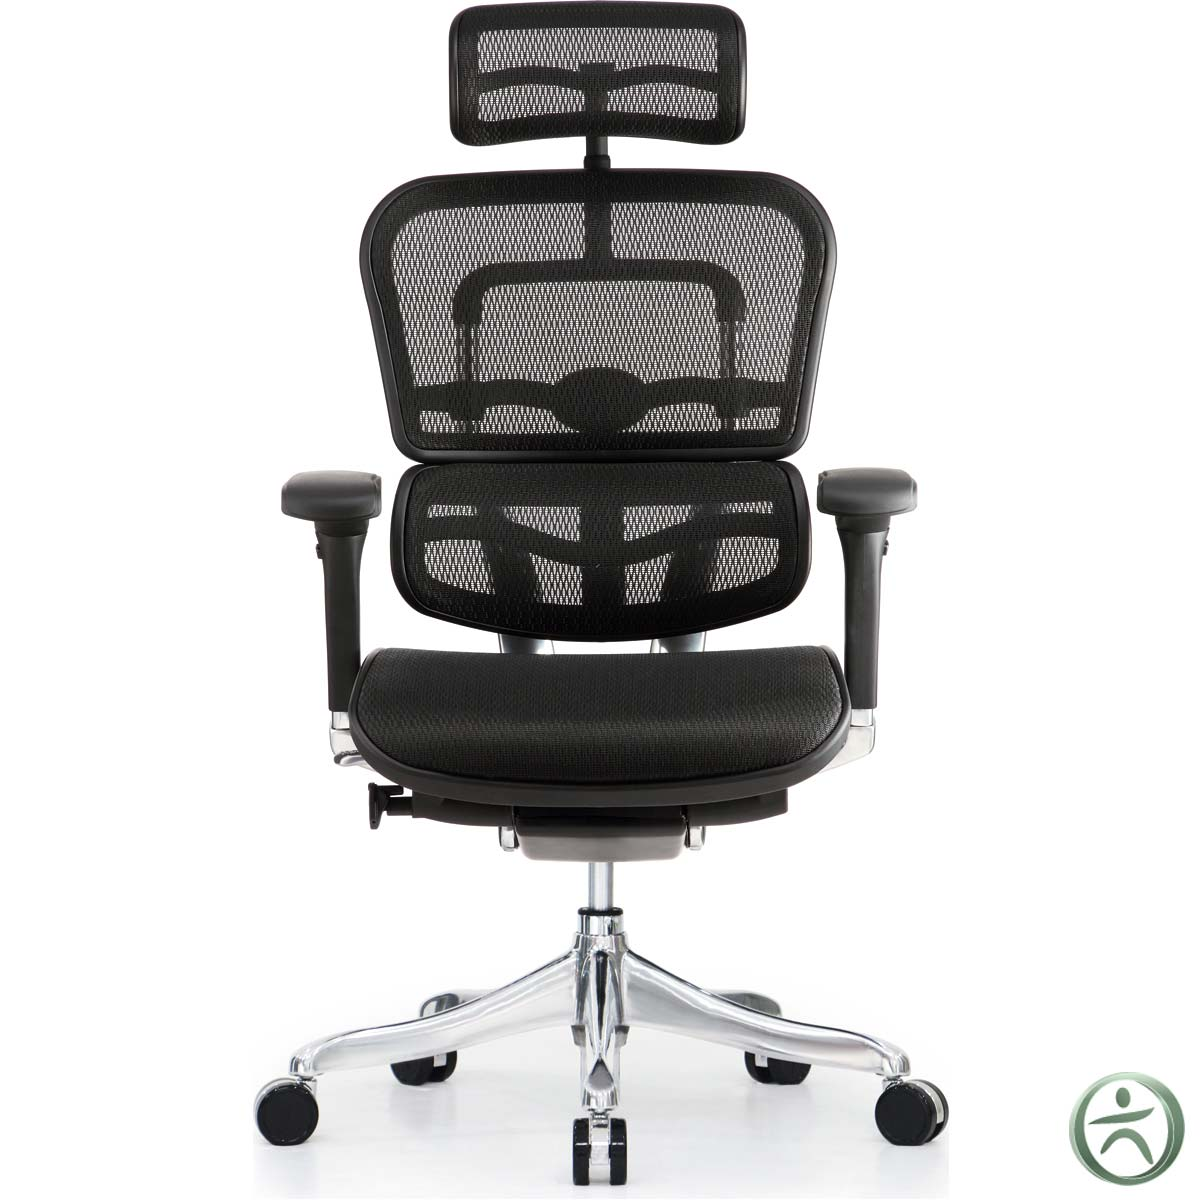 raynor ergohuman chair gaming steel frame shop ergo elite chairs with headrest me22erglt